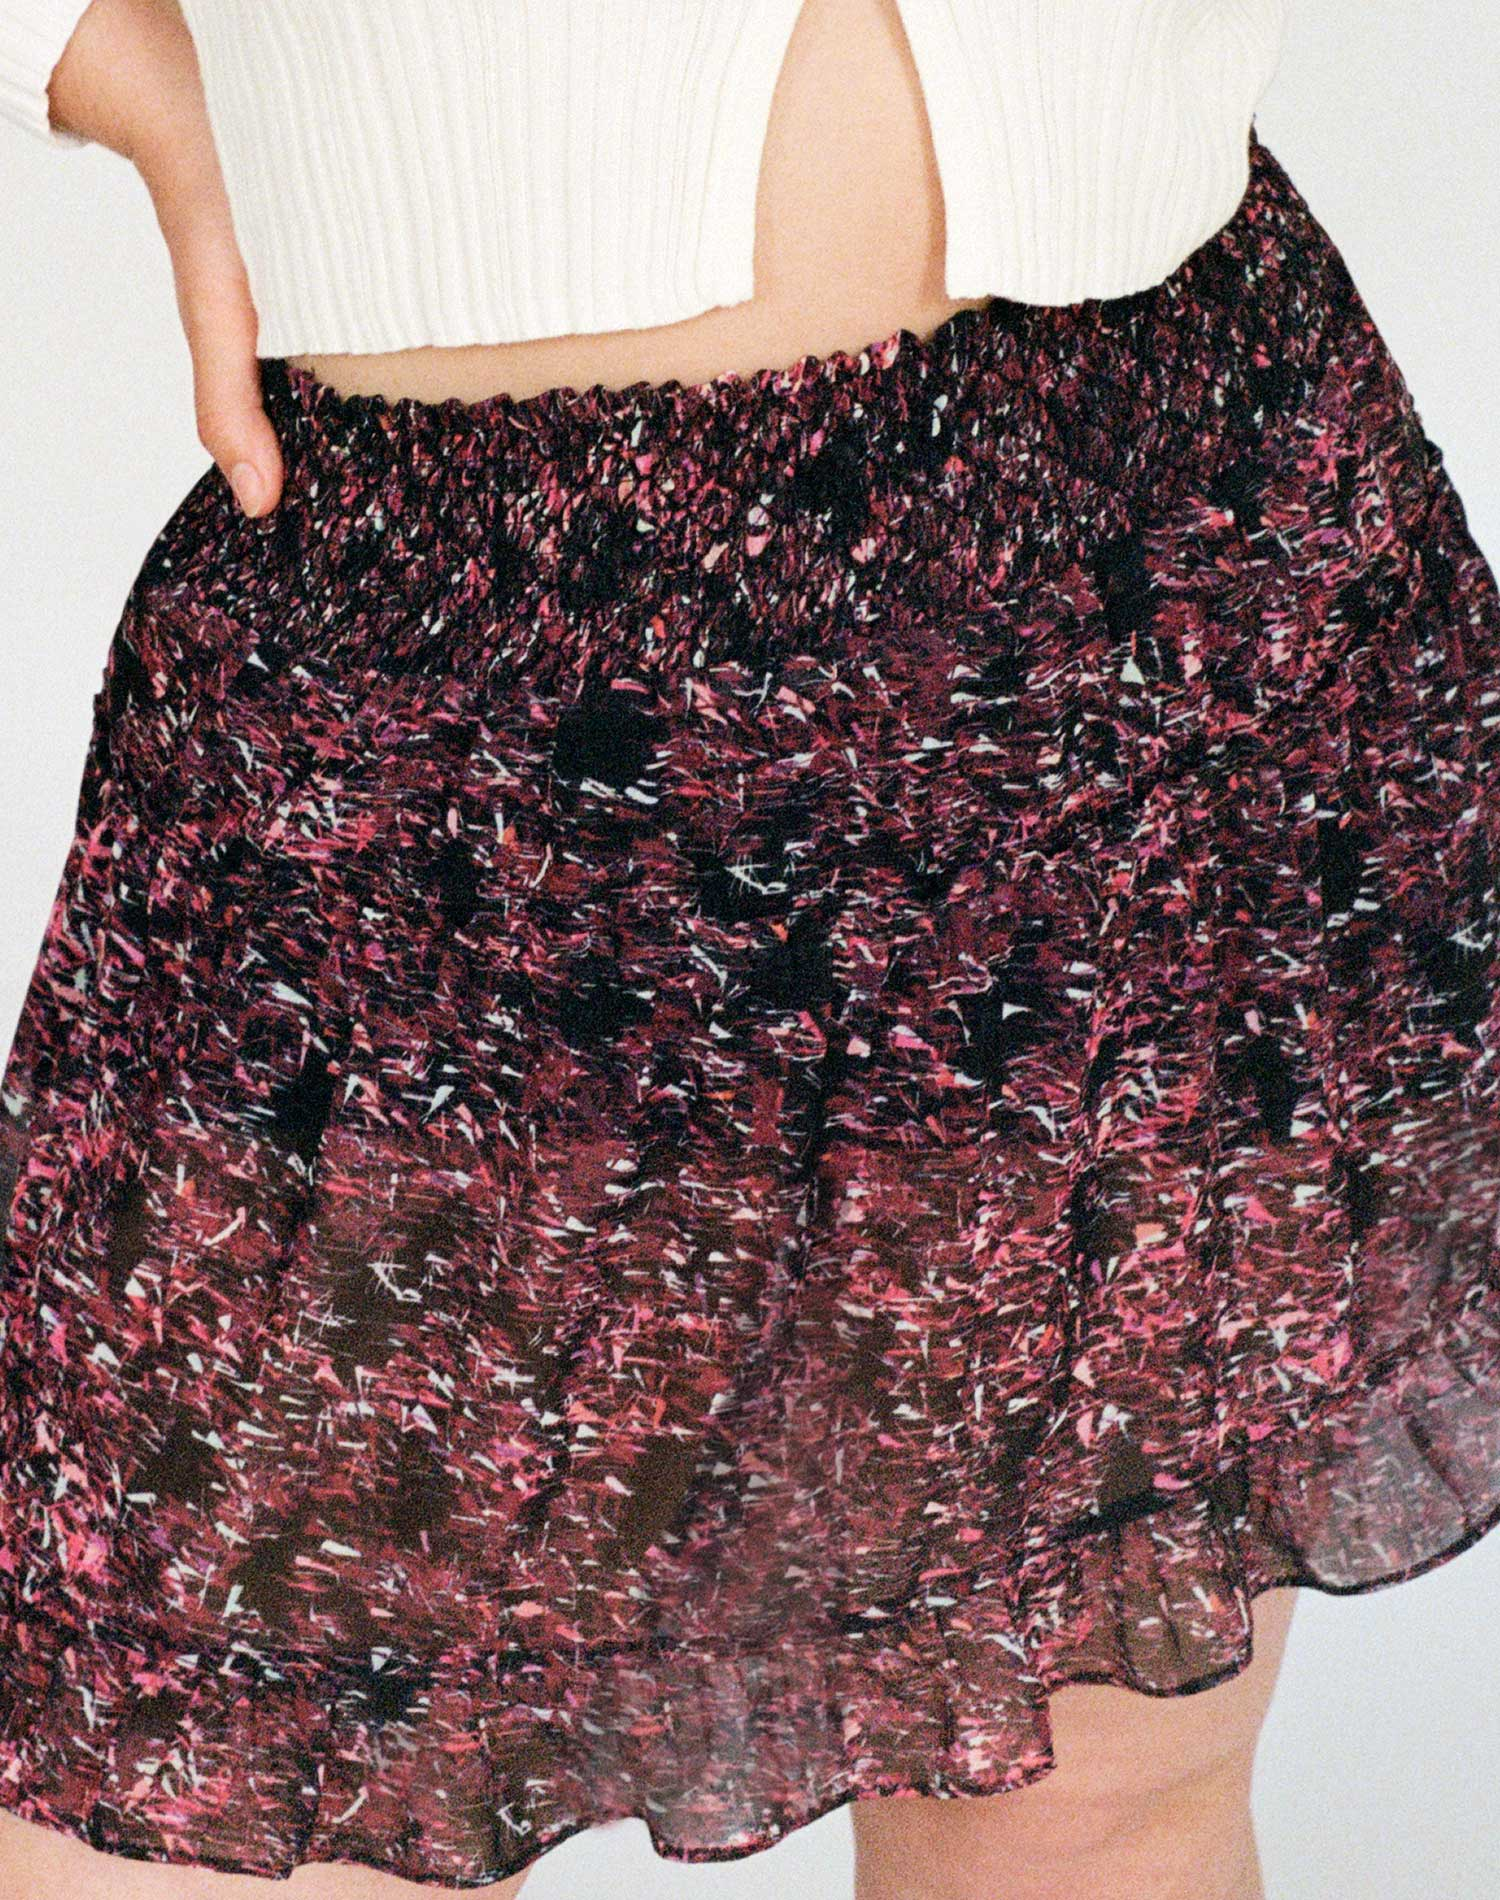 The Iris Cinch Waist Skirt